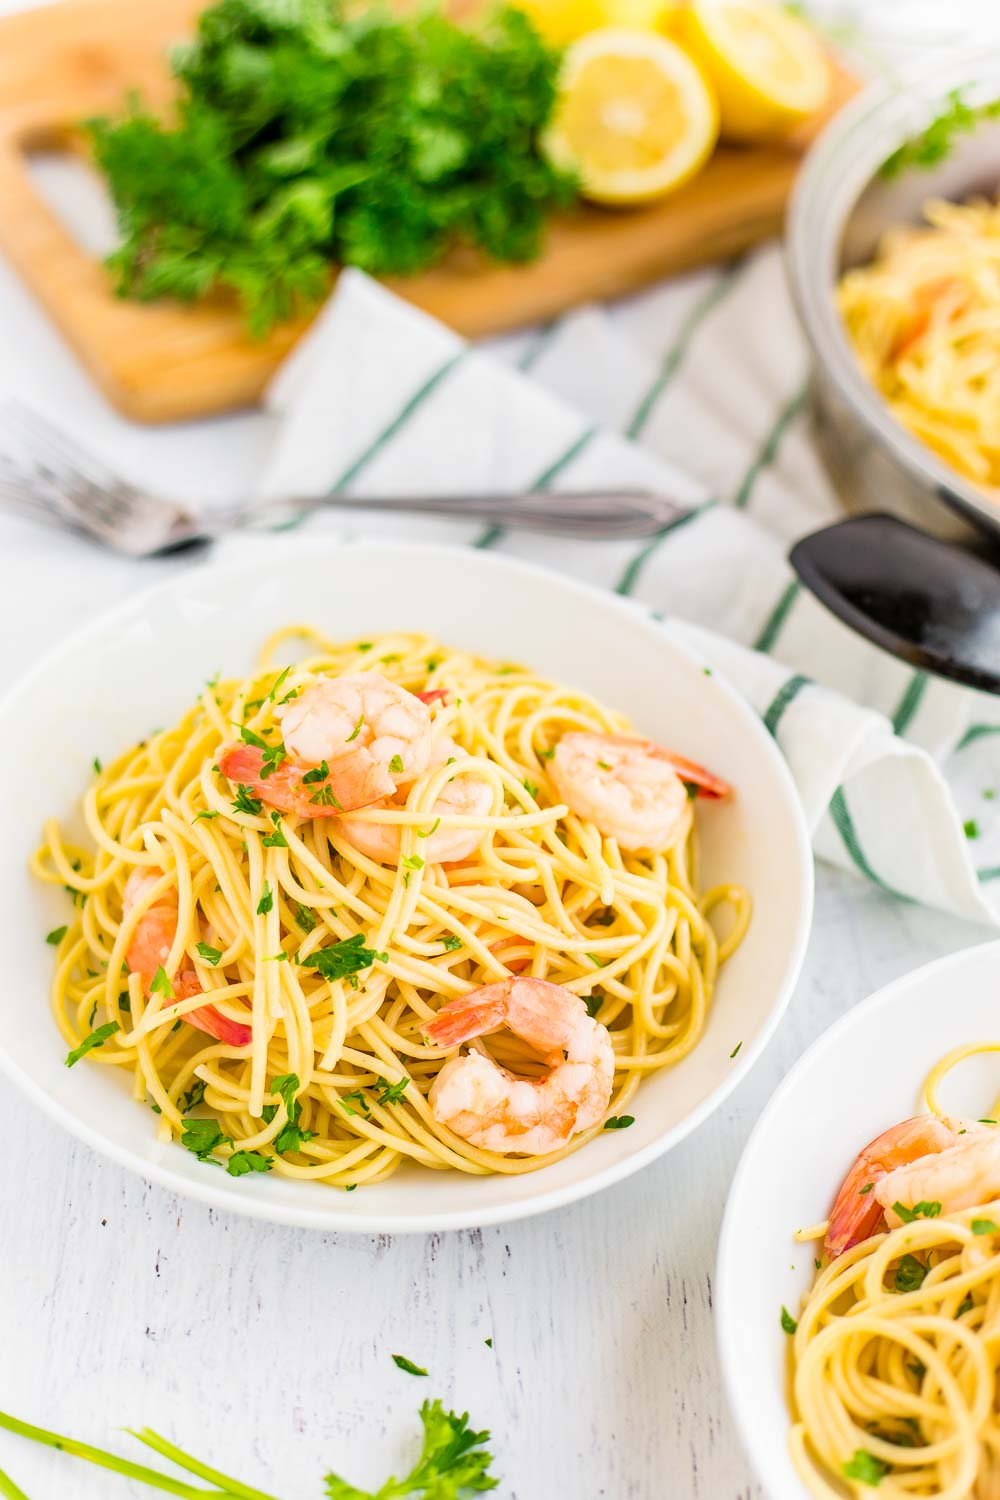 The finished Shrimp Scampi in white pasta bowls.